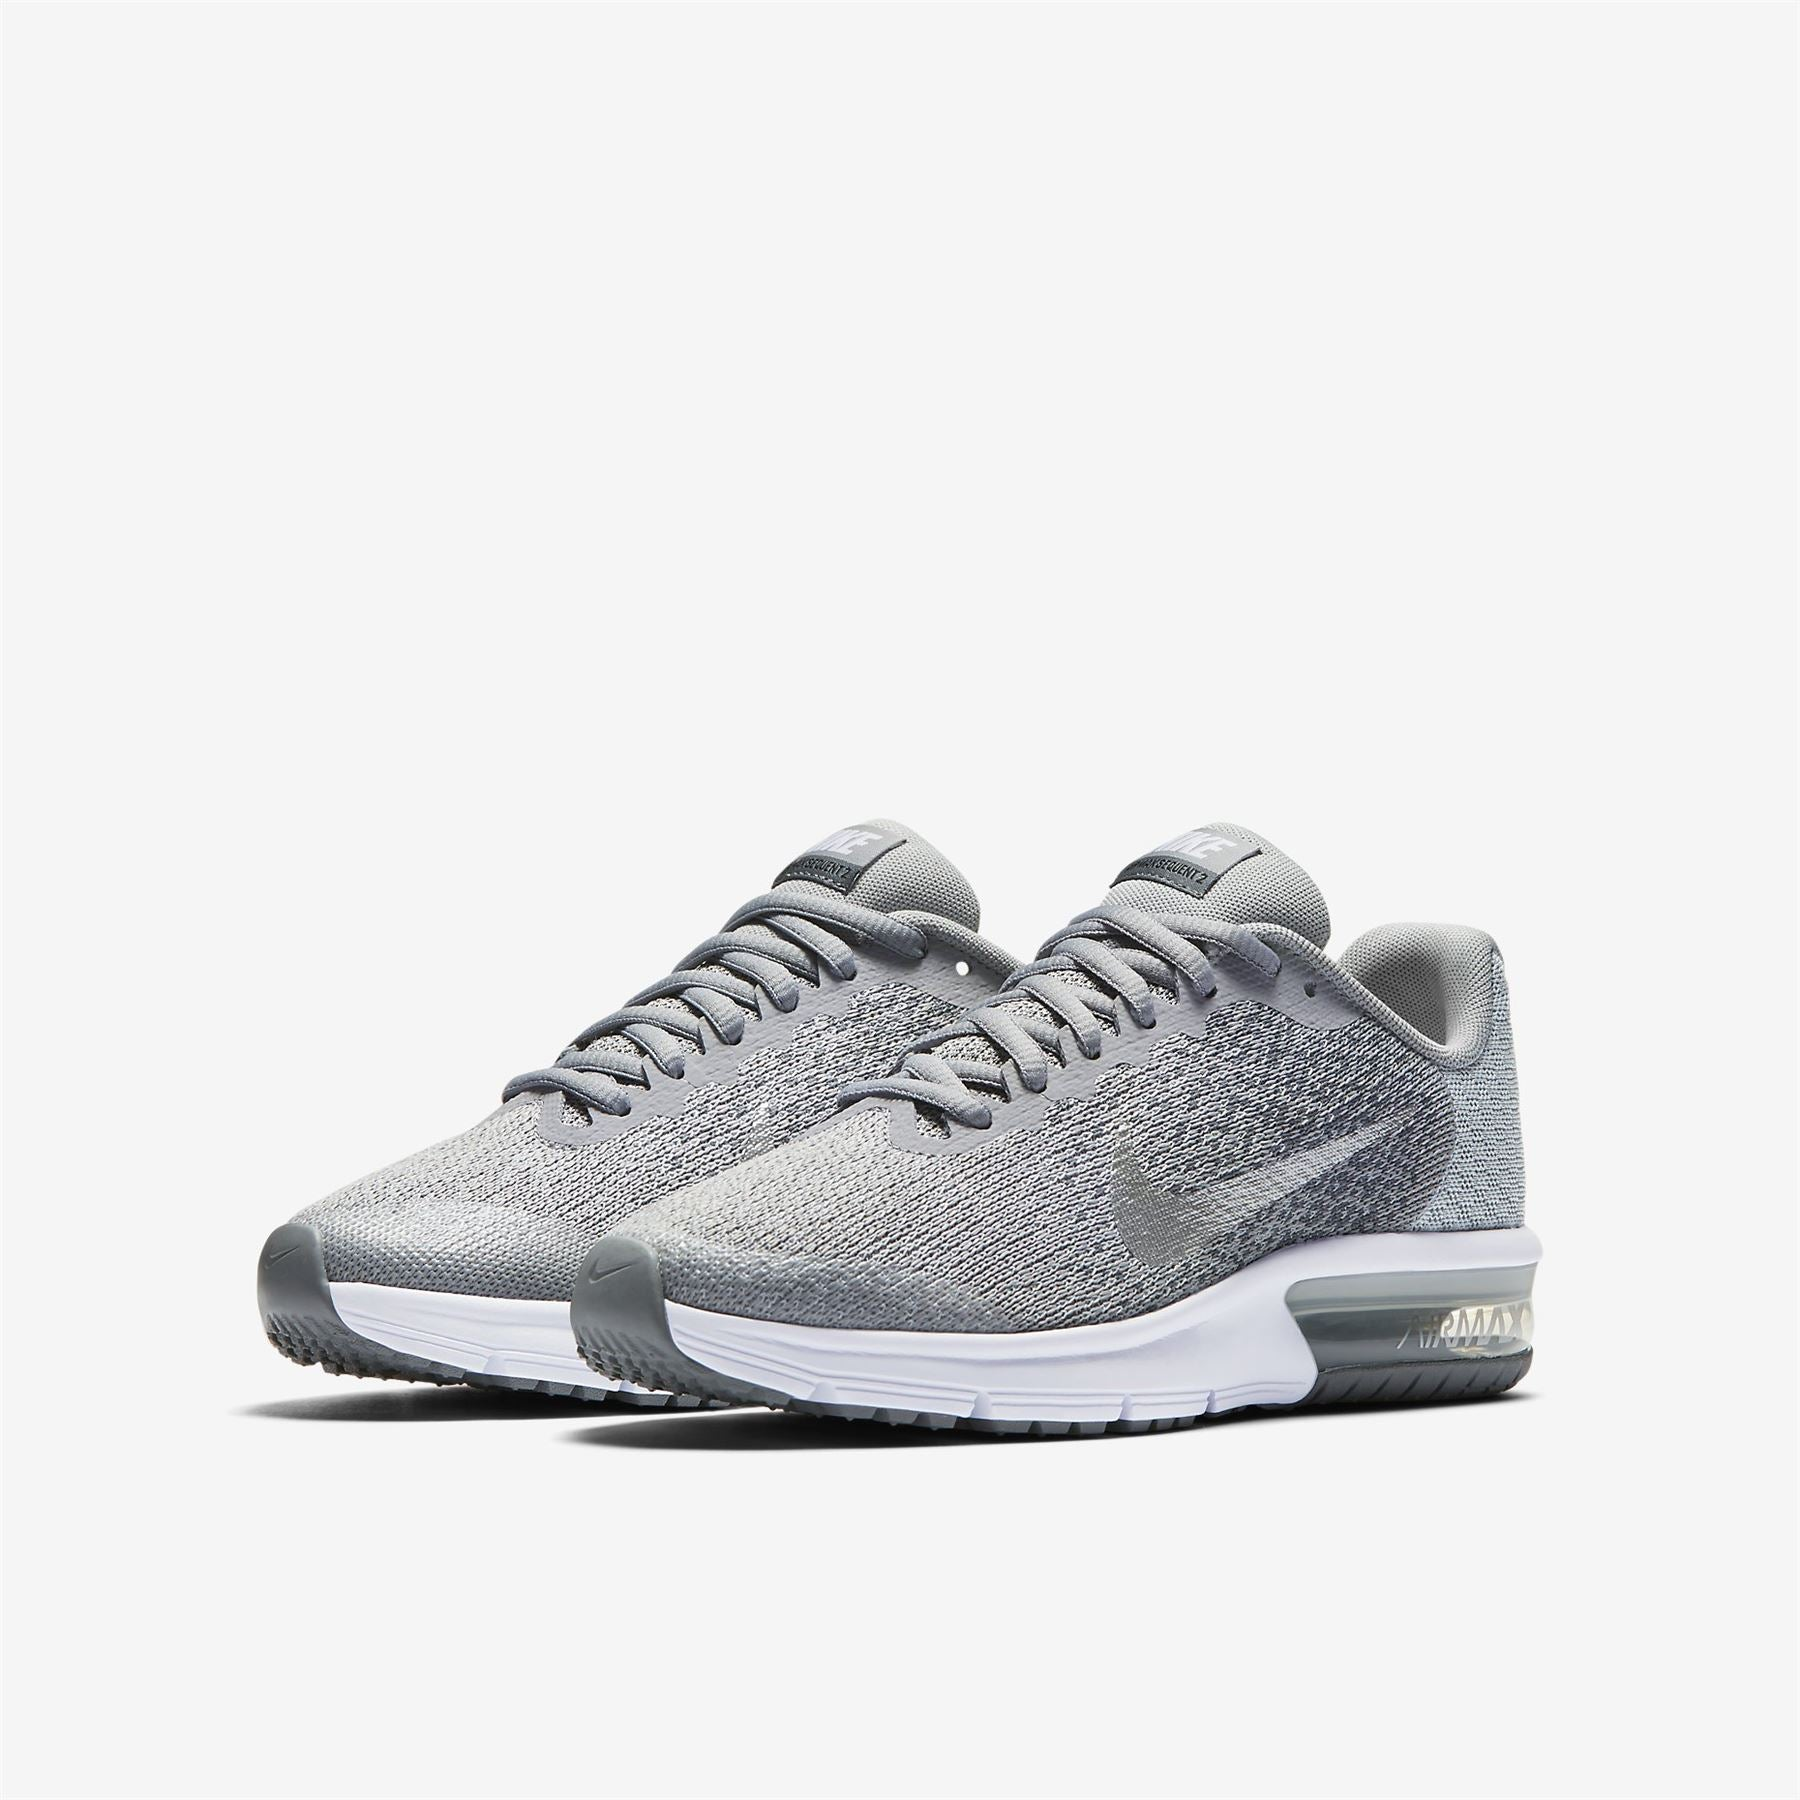 NIKE AIR MAX SEQUENT 2 869994 001 GREY